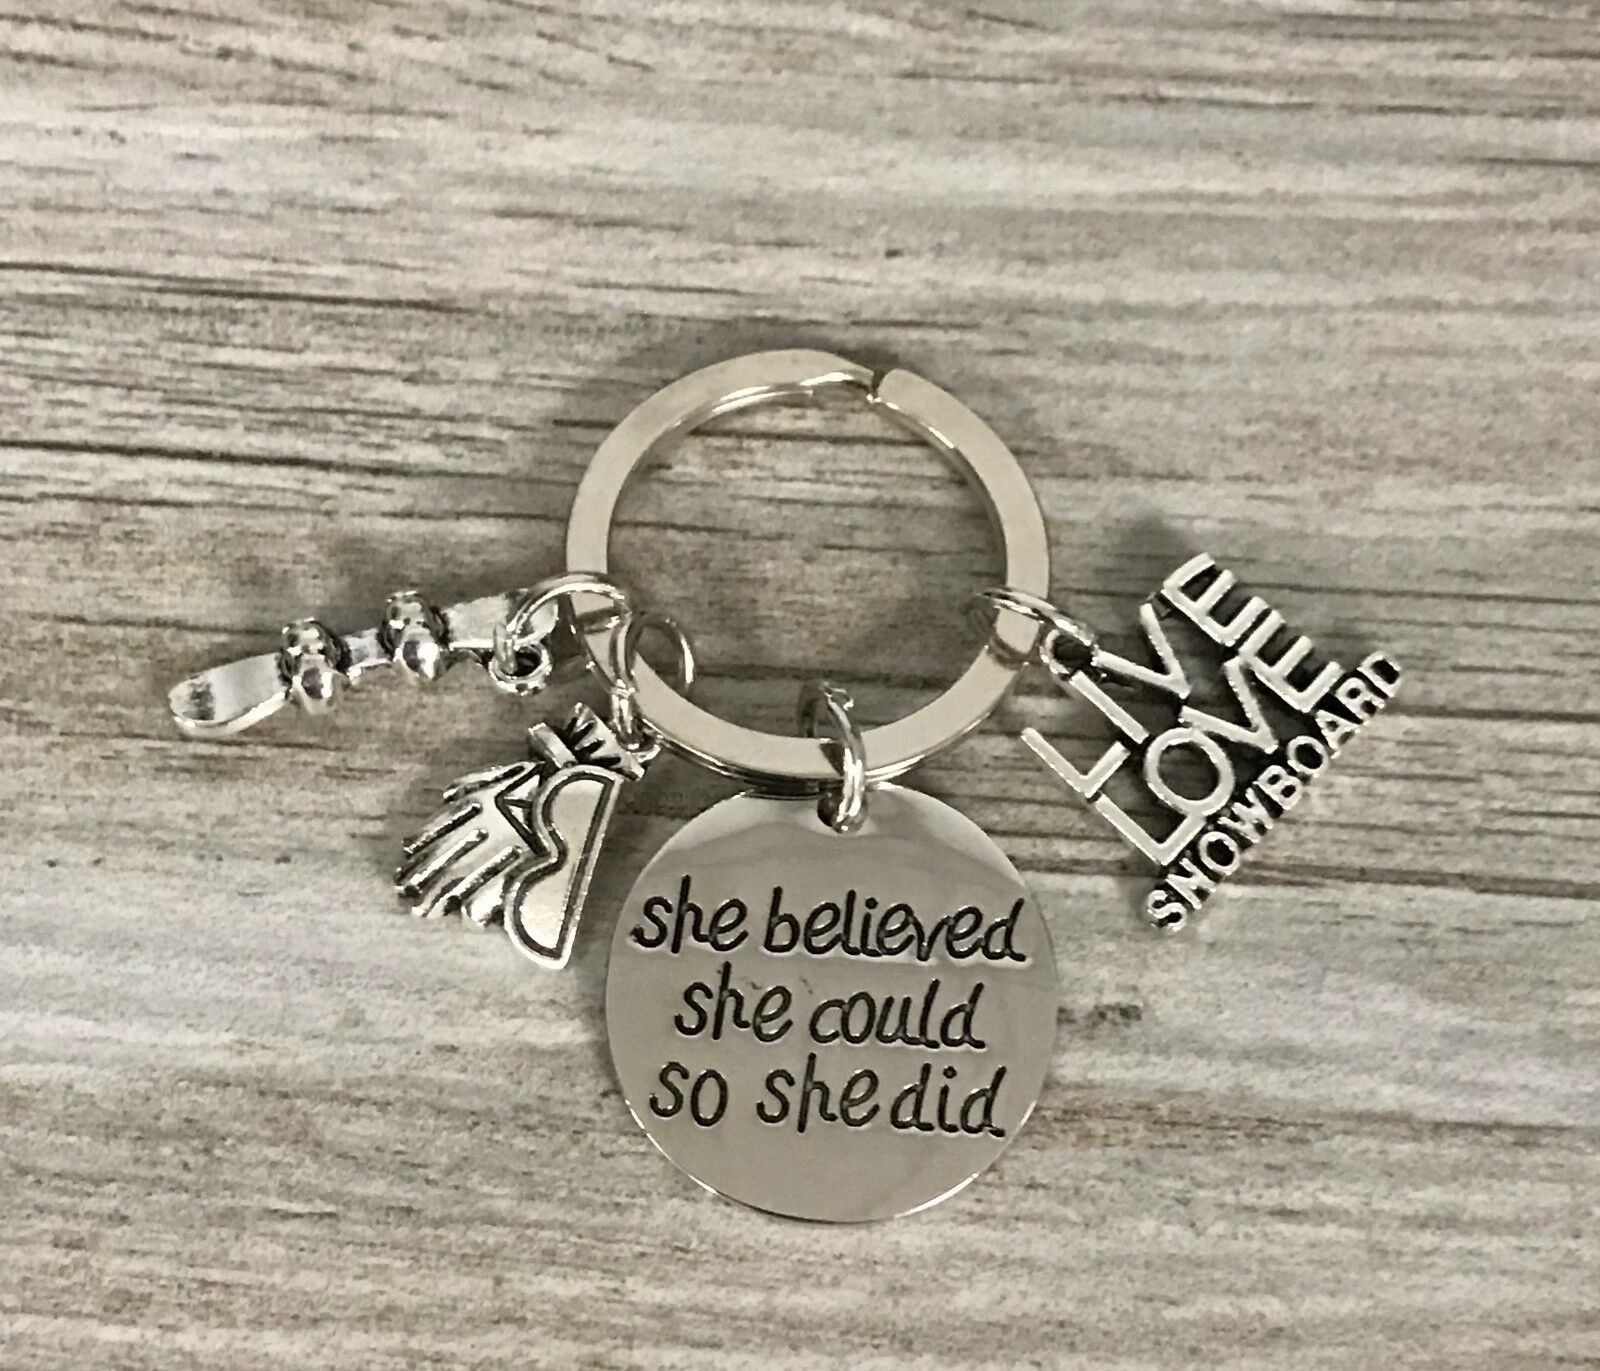 Primary image for Snowboarding She Believed She Could So She Did Keychain, Snowboarding Gift